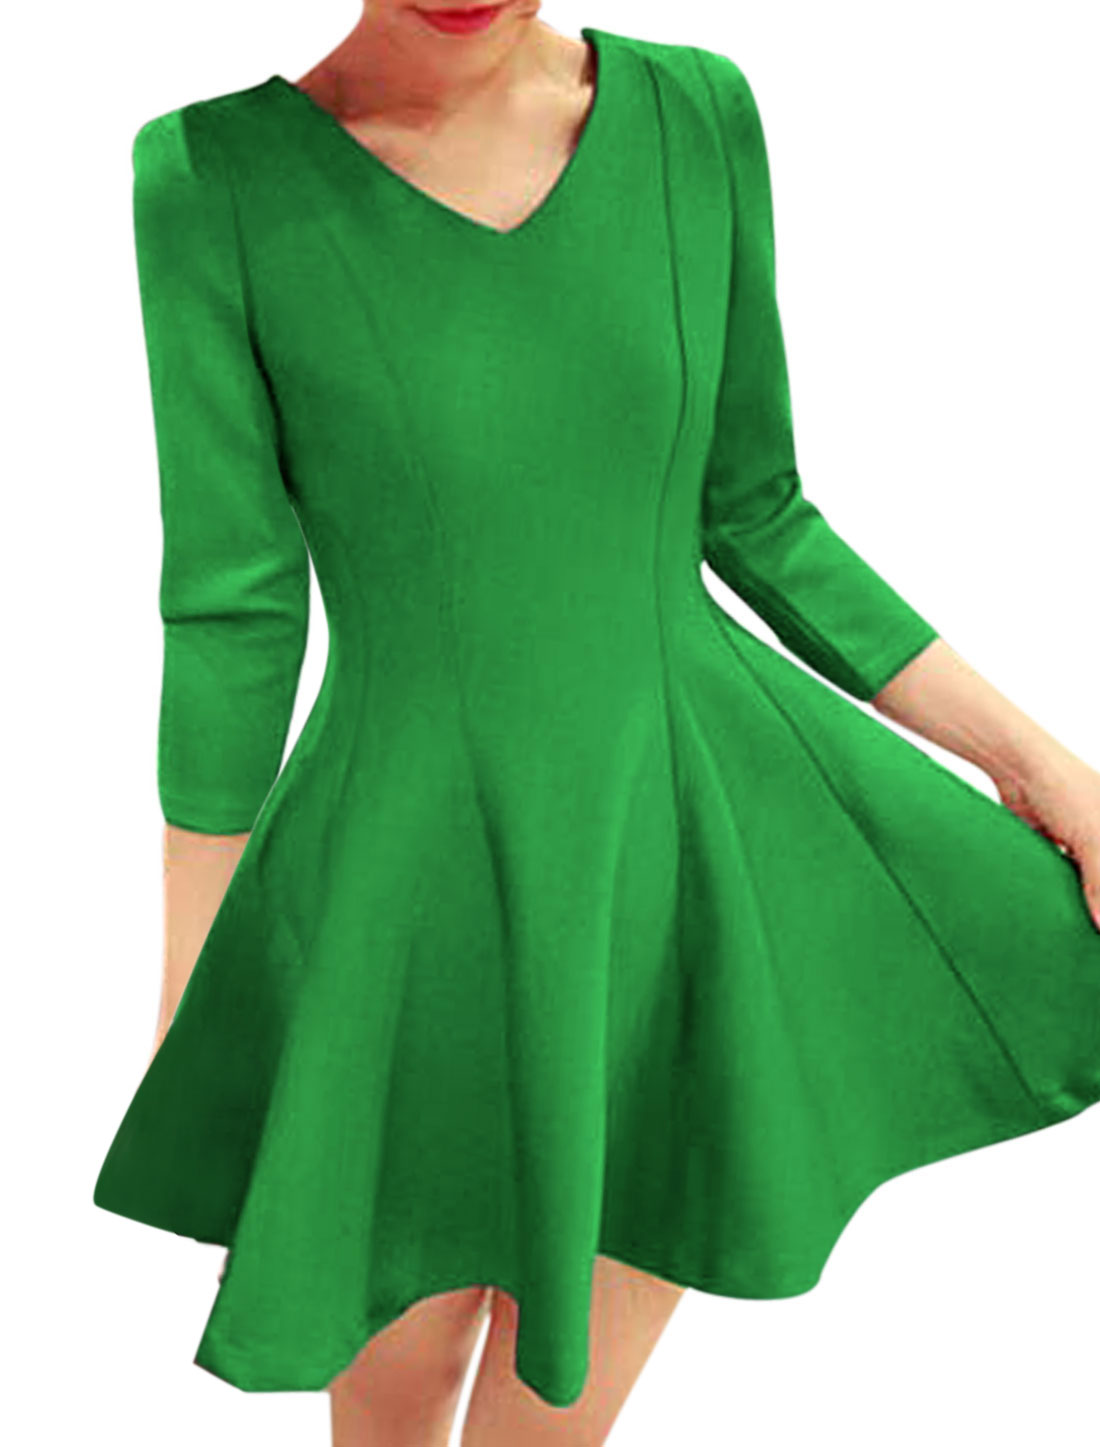 Women Round Neck Fit and Flare Leisure Pullover Skater Dress Green S